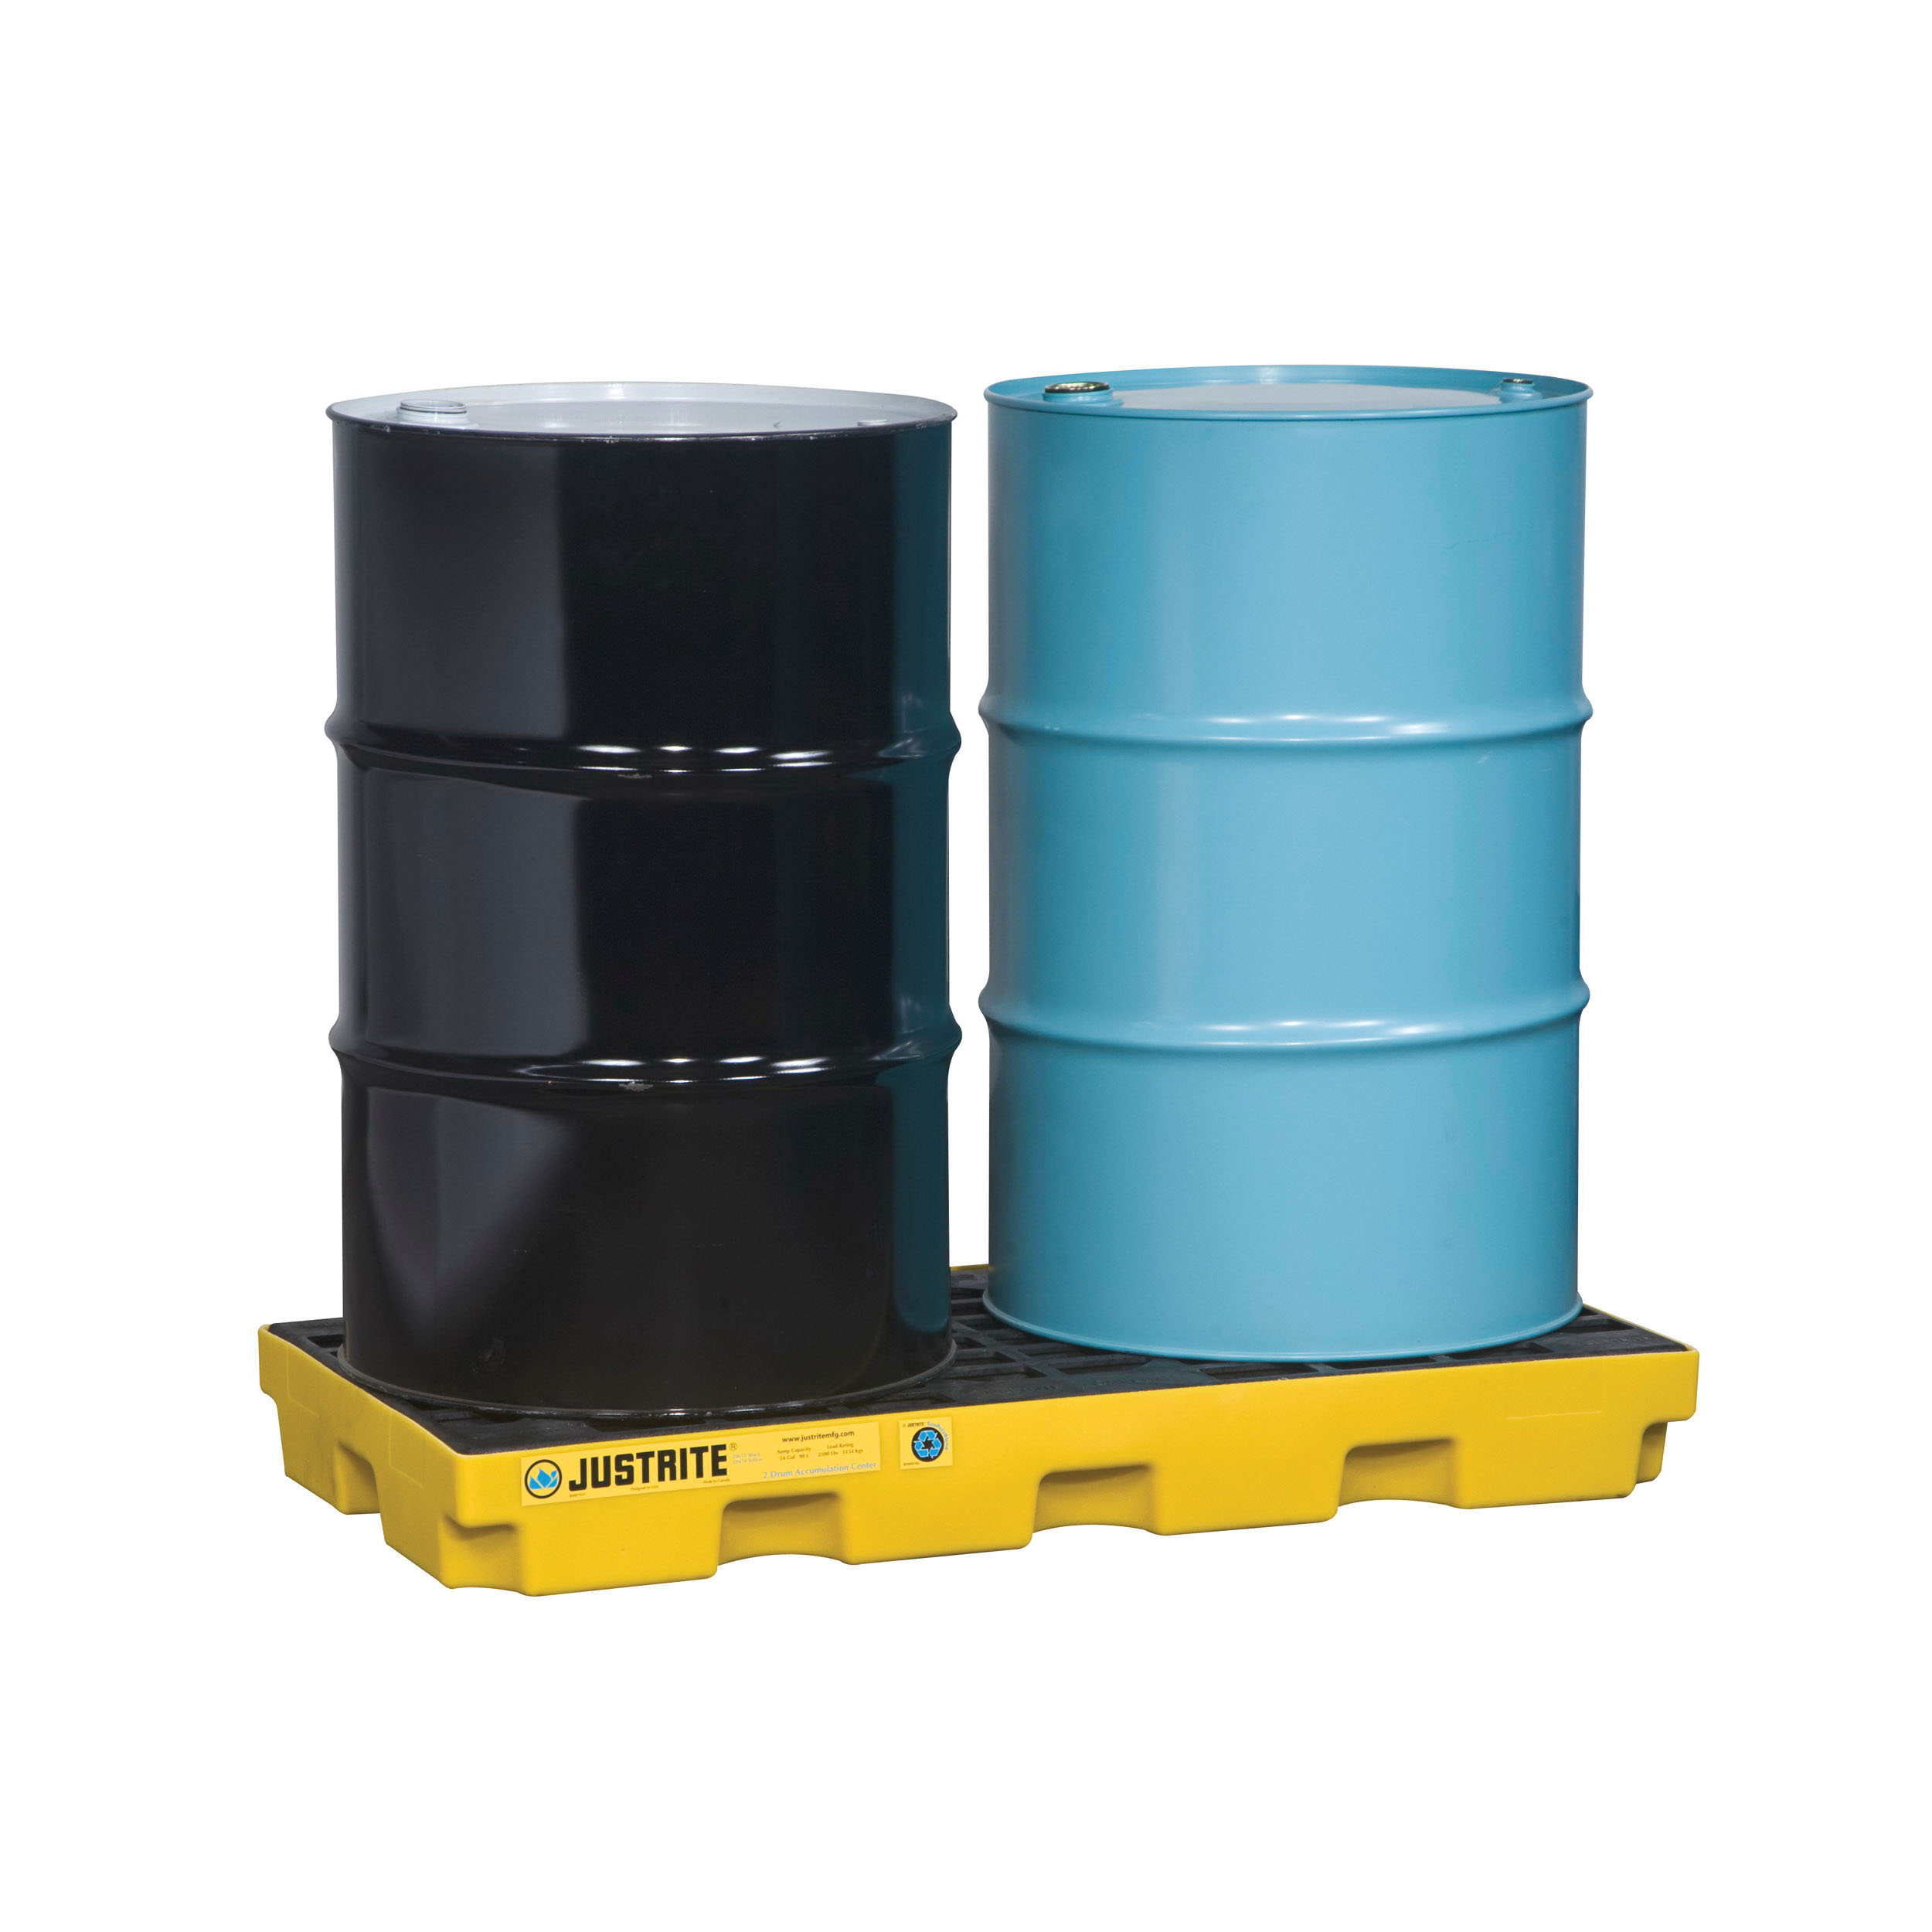 Justrite® 28654 EcoPolyBlend™ Accumulation Center, 2 Drums, 24 gal Spill, 2500 lb Load, 45% Recycled Polyethylene